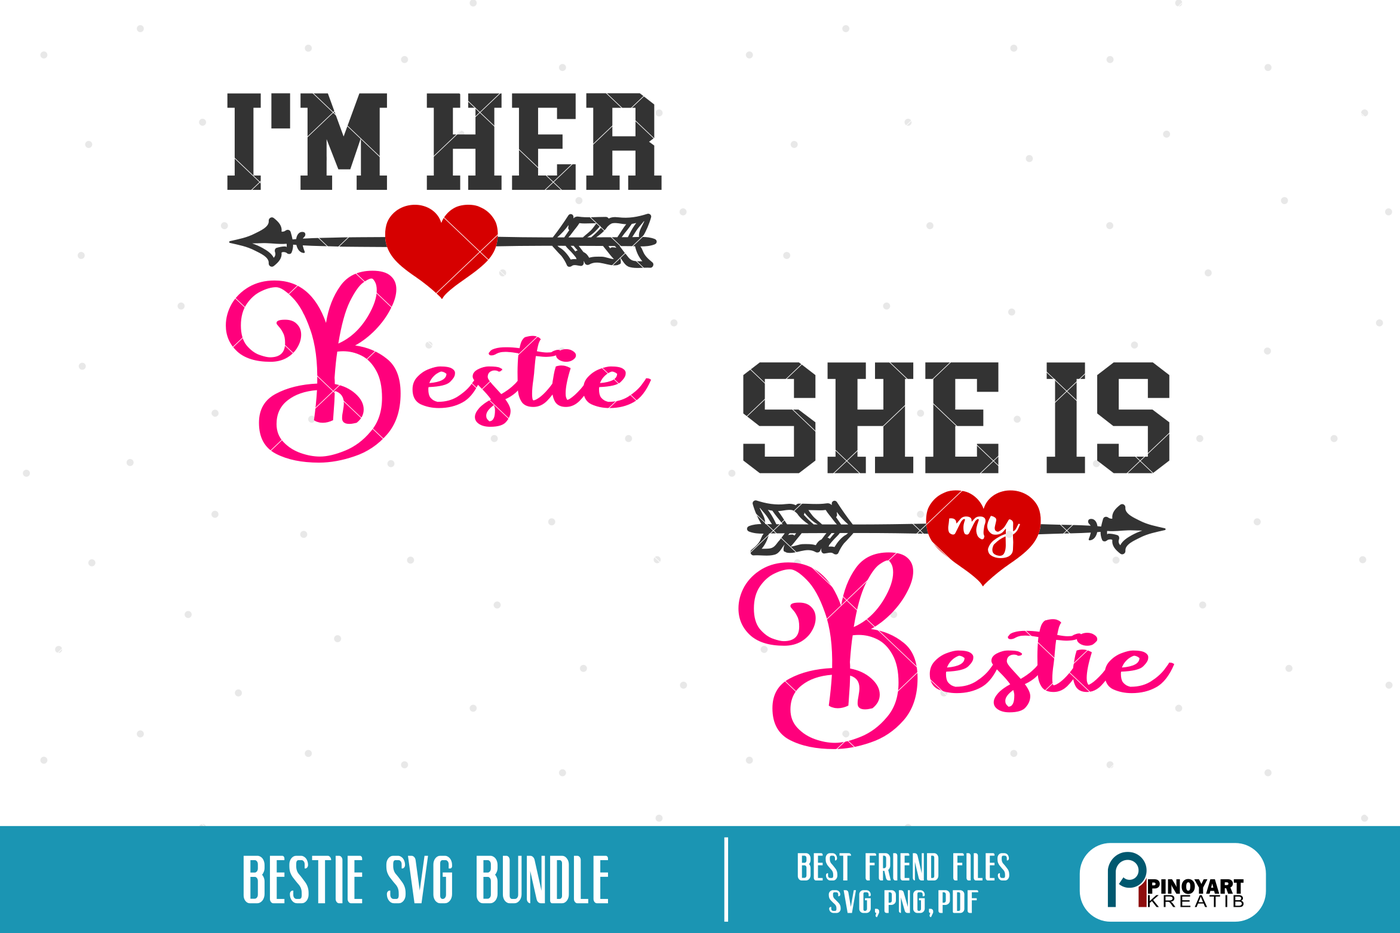 Bestfriend Svg Bestfriend Svg File Bestfriends Svg Bestie Svg